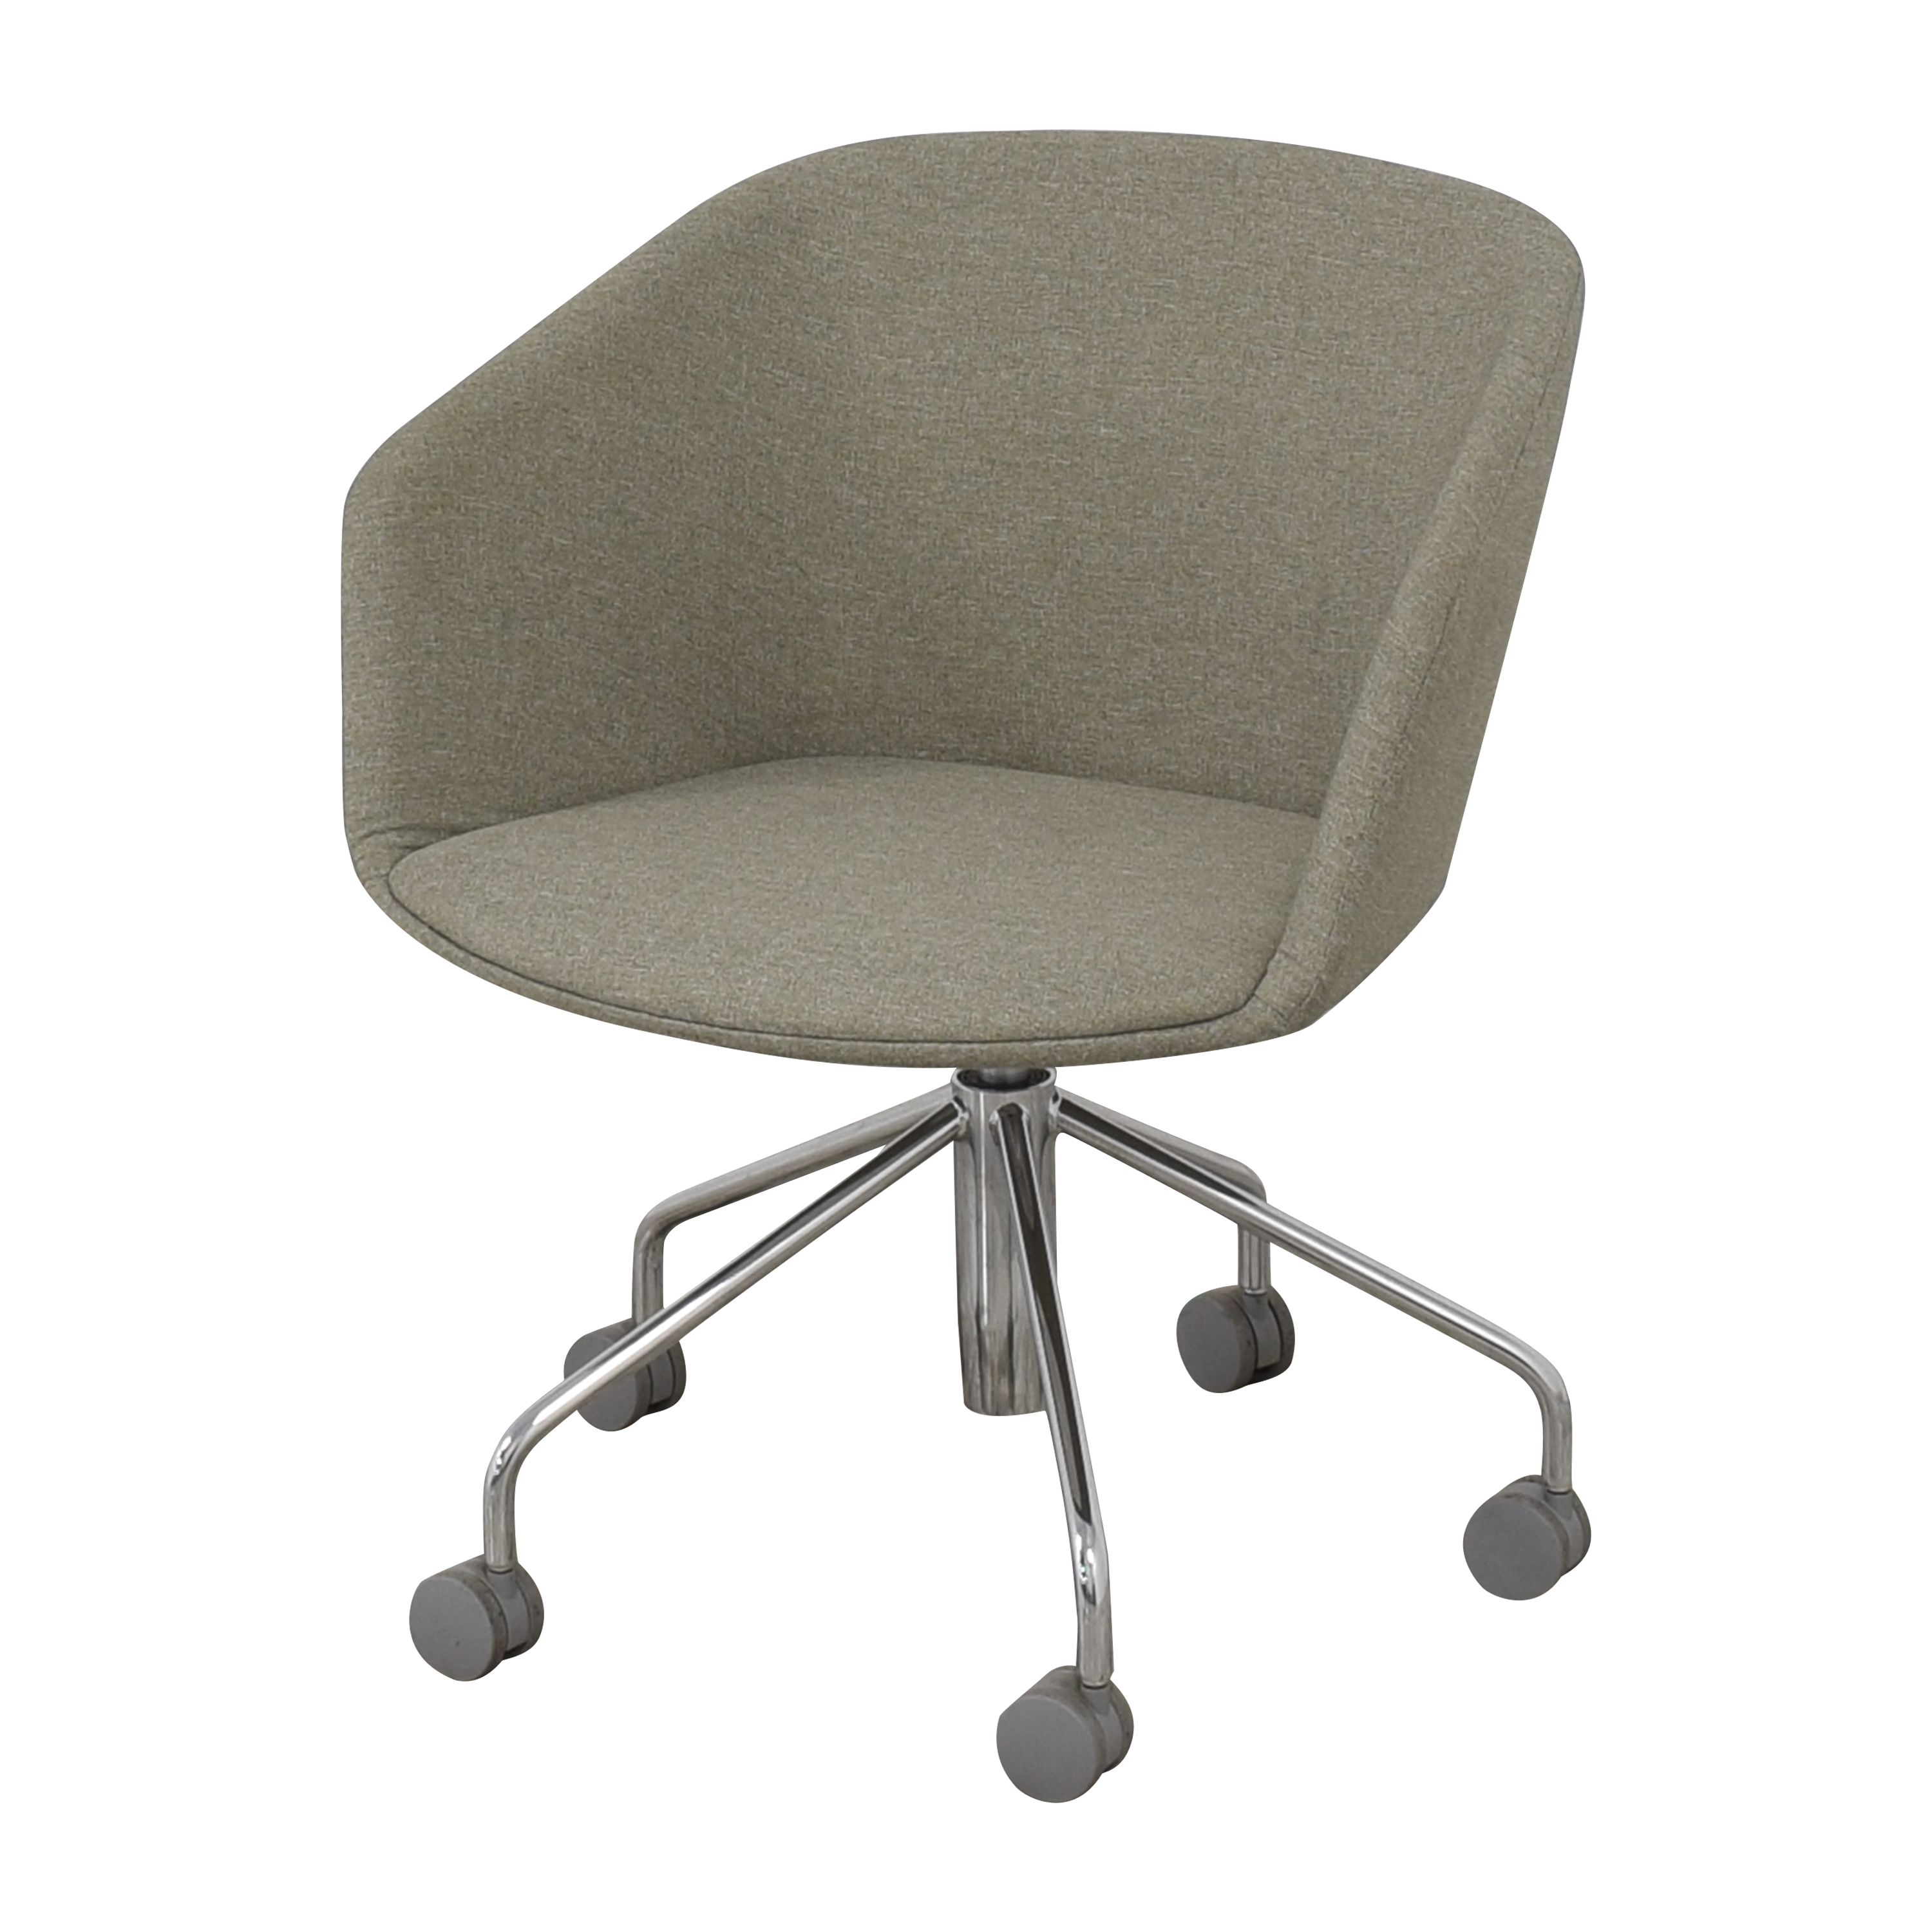 Poppin Poppin Pitch Meeting Chair pa